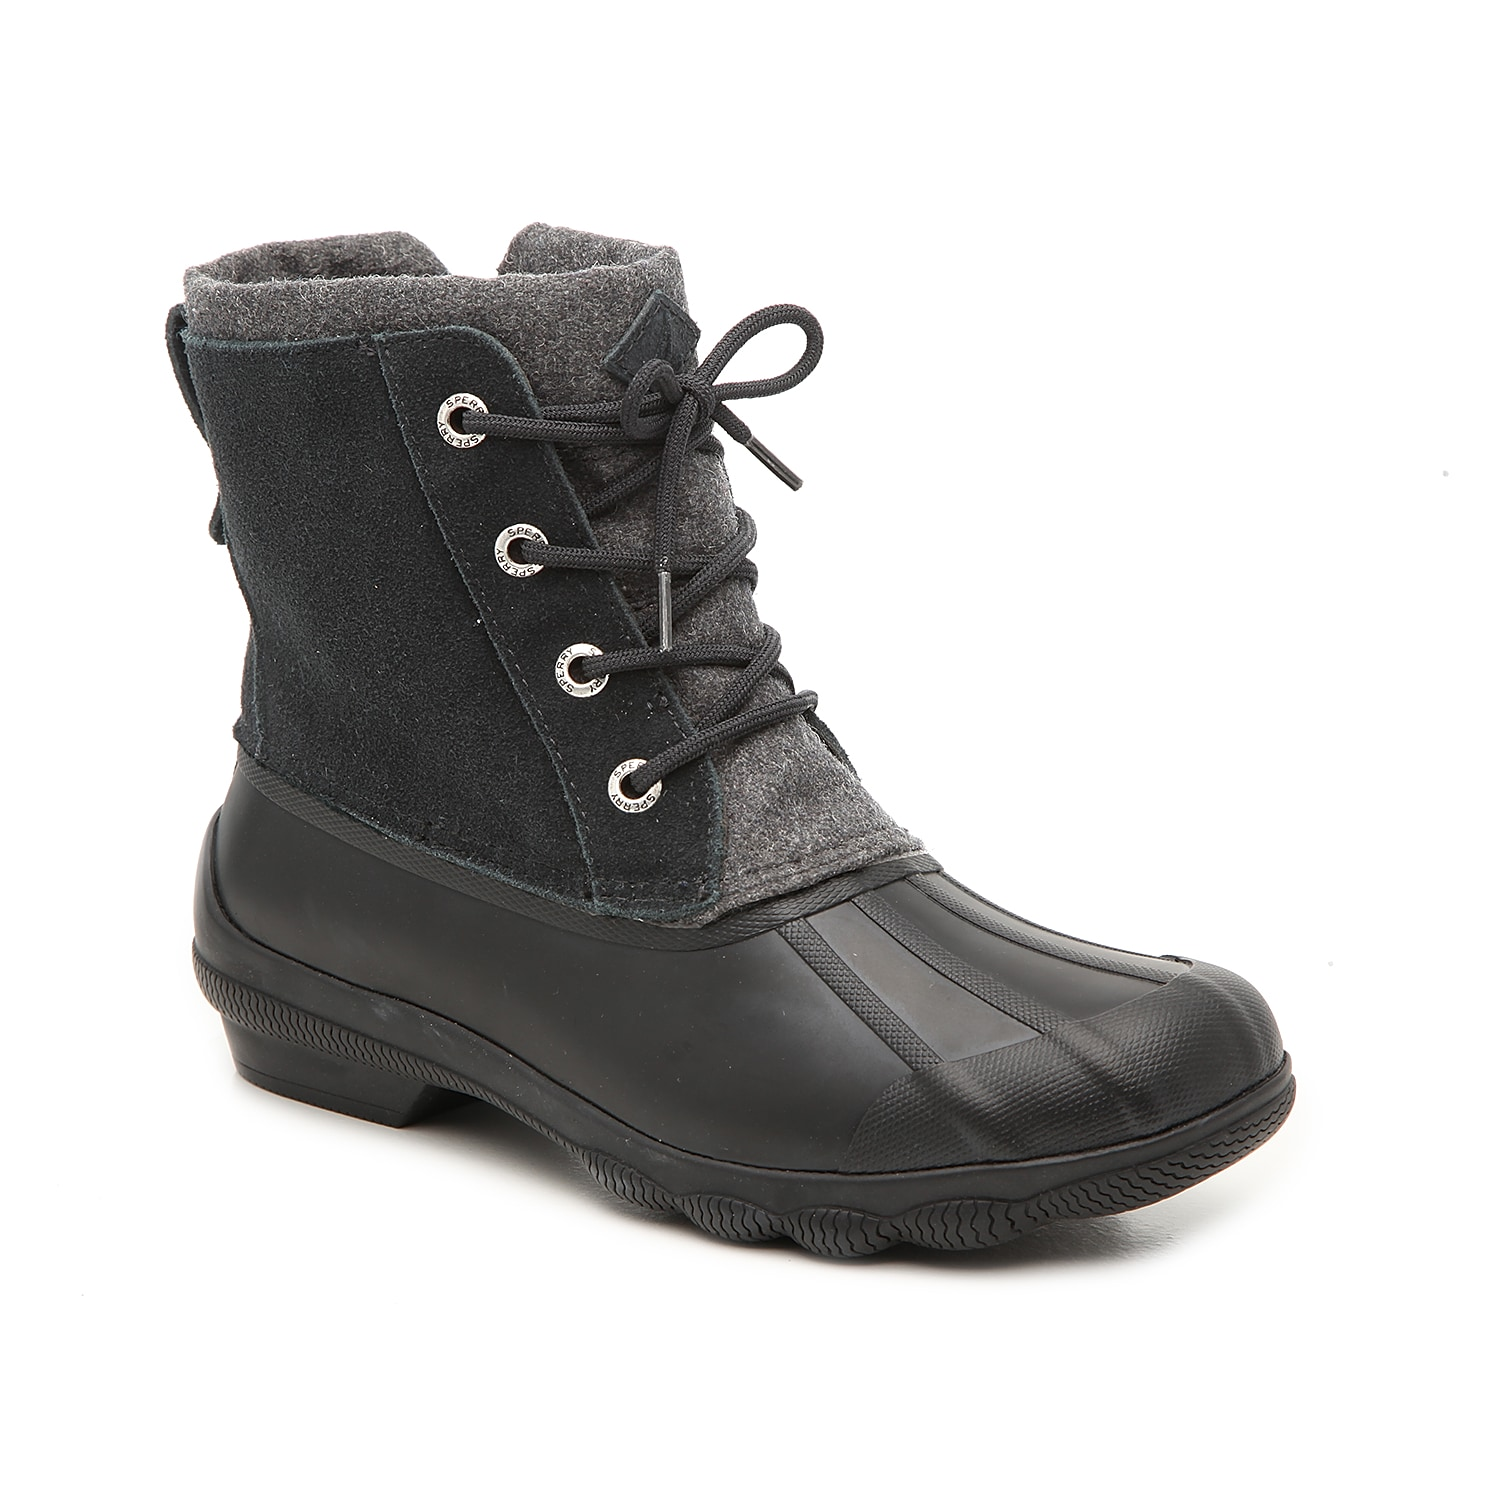 Zip up the Syren duck boots from Sperry to complete your cold-weather look. These wool-blend booties feature a warm microfleece lining to keep feet cozy and are finished with a traction sole for steady steps. Click here for Boot Measuring Guide.